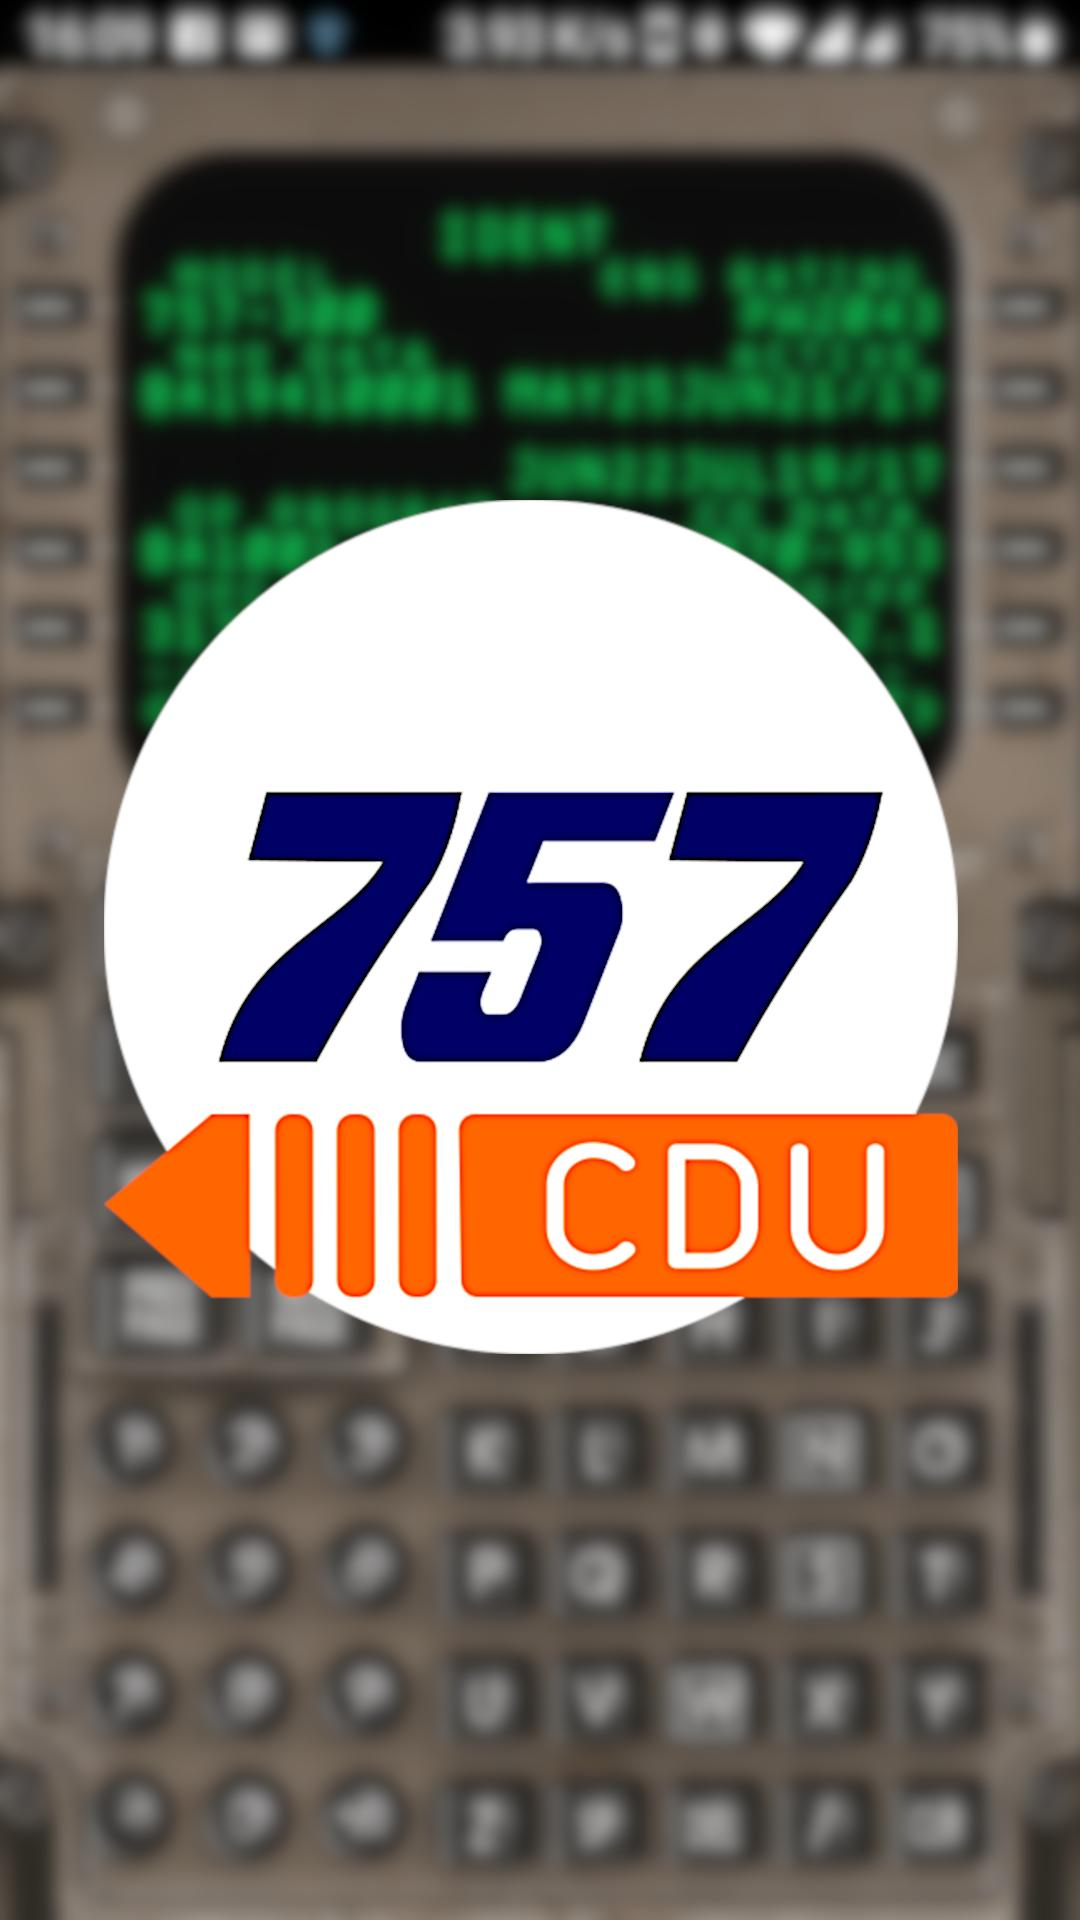 Captain Sim 757 Wireless CDU for Android - APK Download